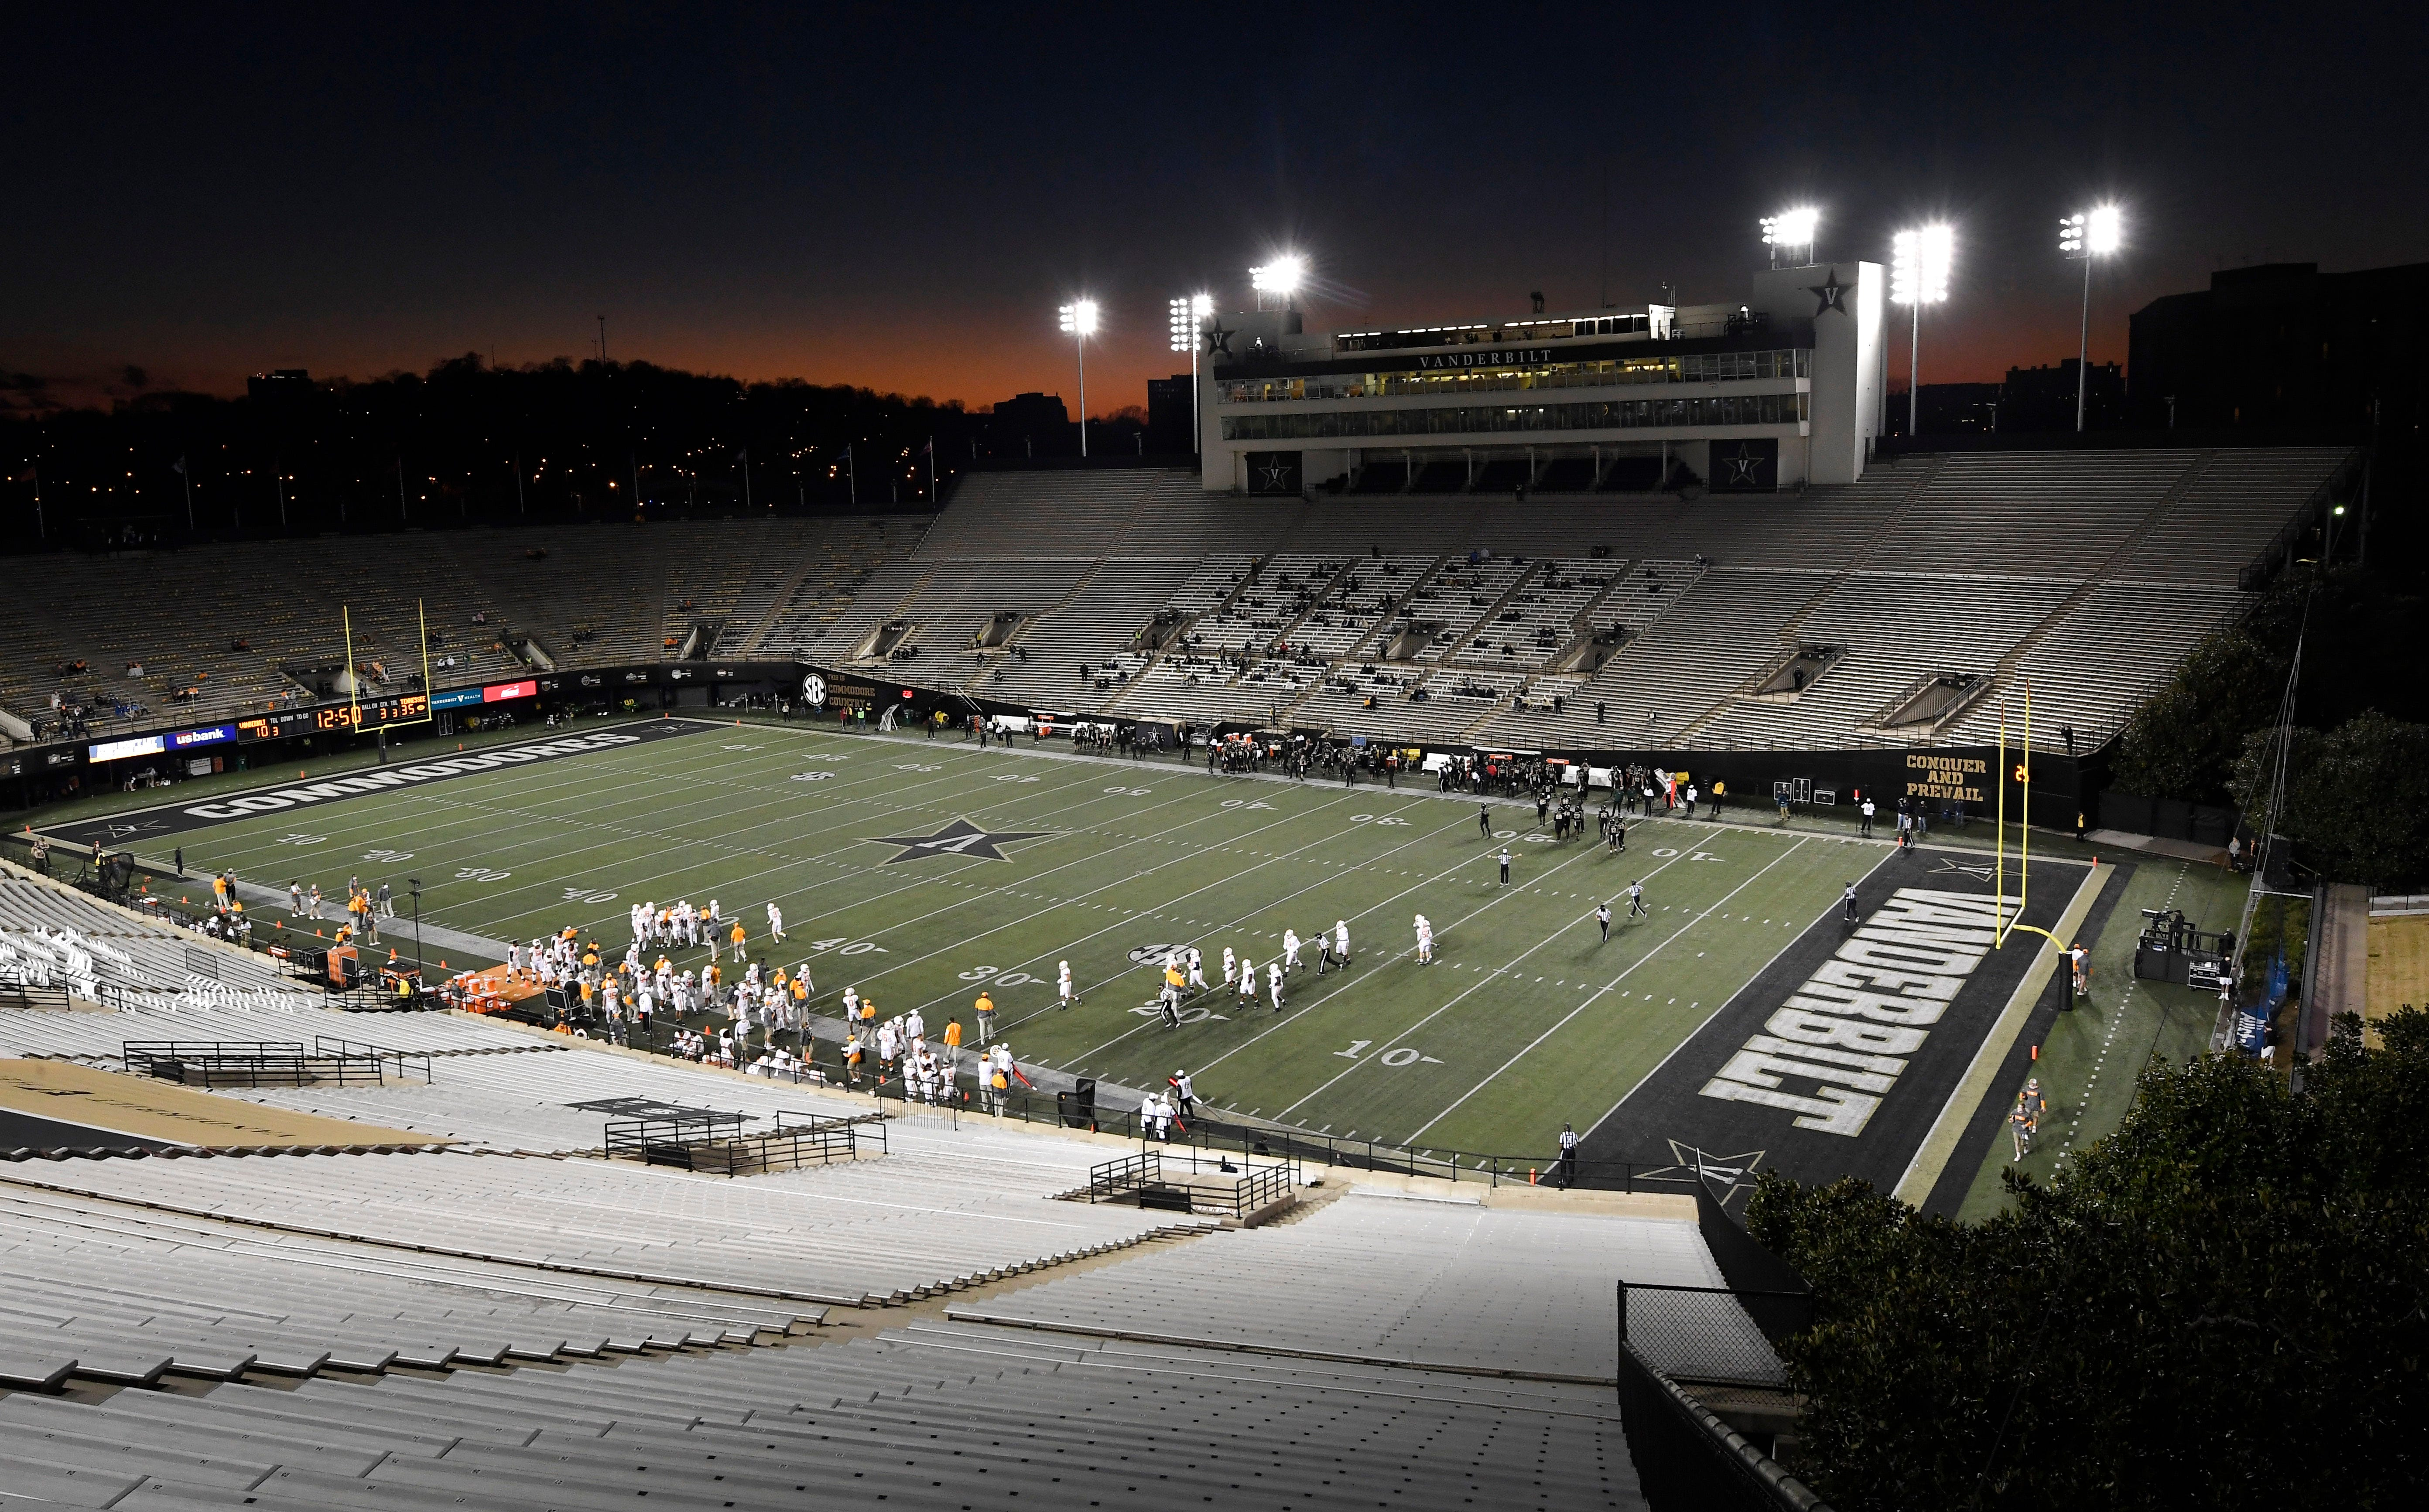 Vanderbilt's first winless football season ends after Georgia game canceled because of  COVID-19